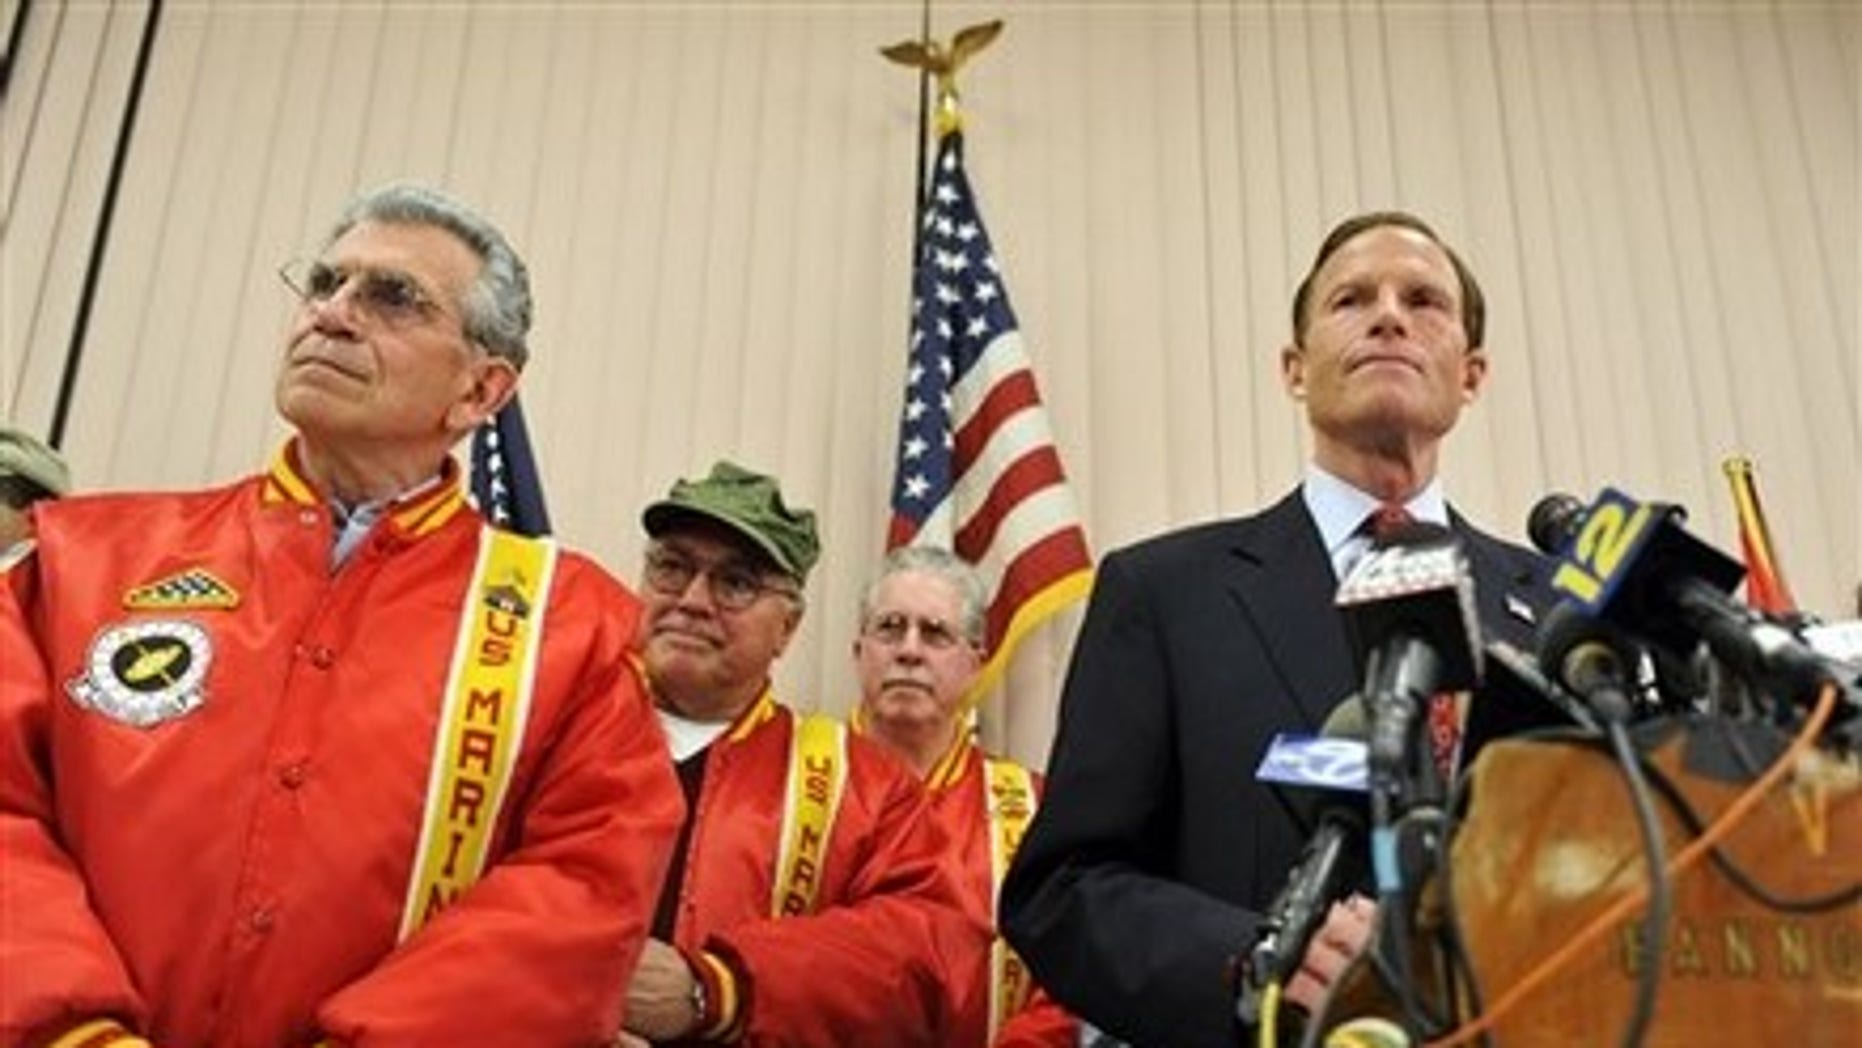 FILE: Connecticut Attorney General and Democratic candidate for U.S. Senate Richard Blumenthal stood with veterans in May to discuss misstatements about his military service during the Vietnam War.  (AP Photo)